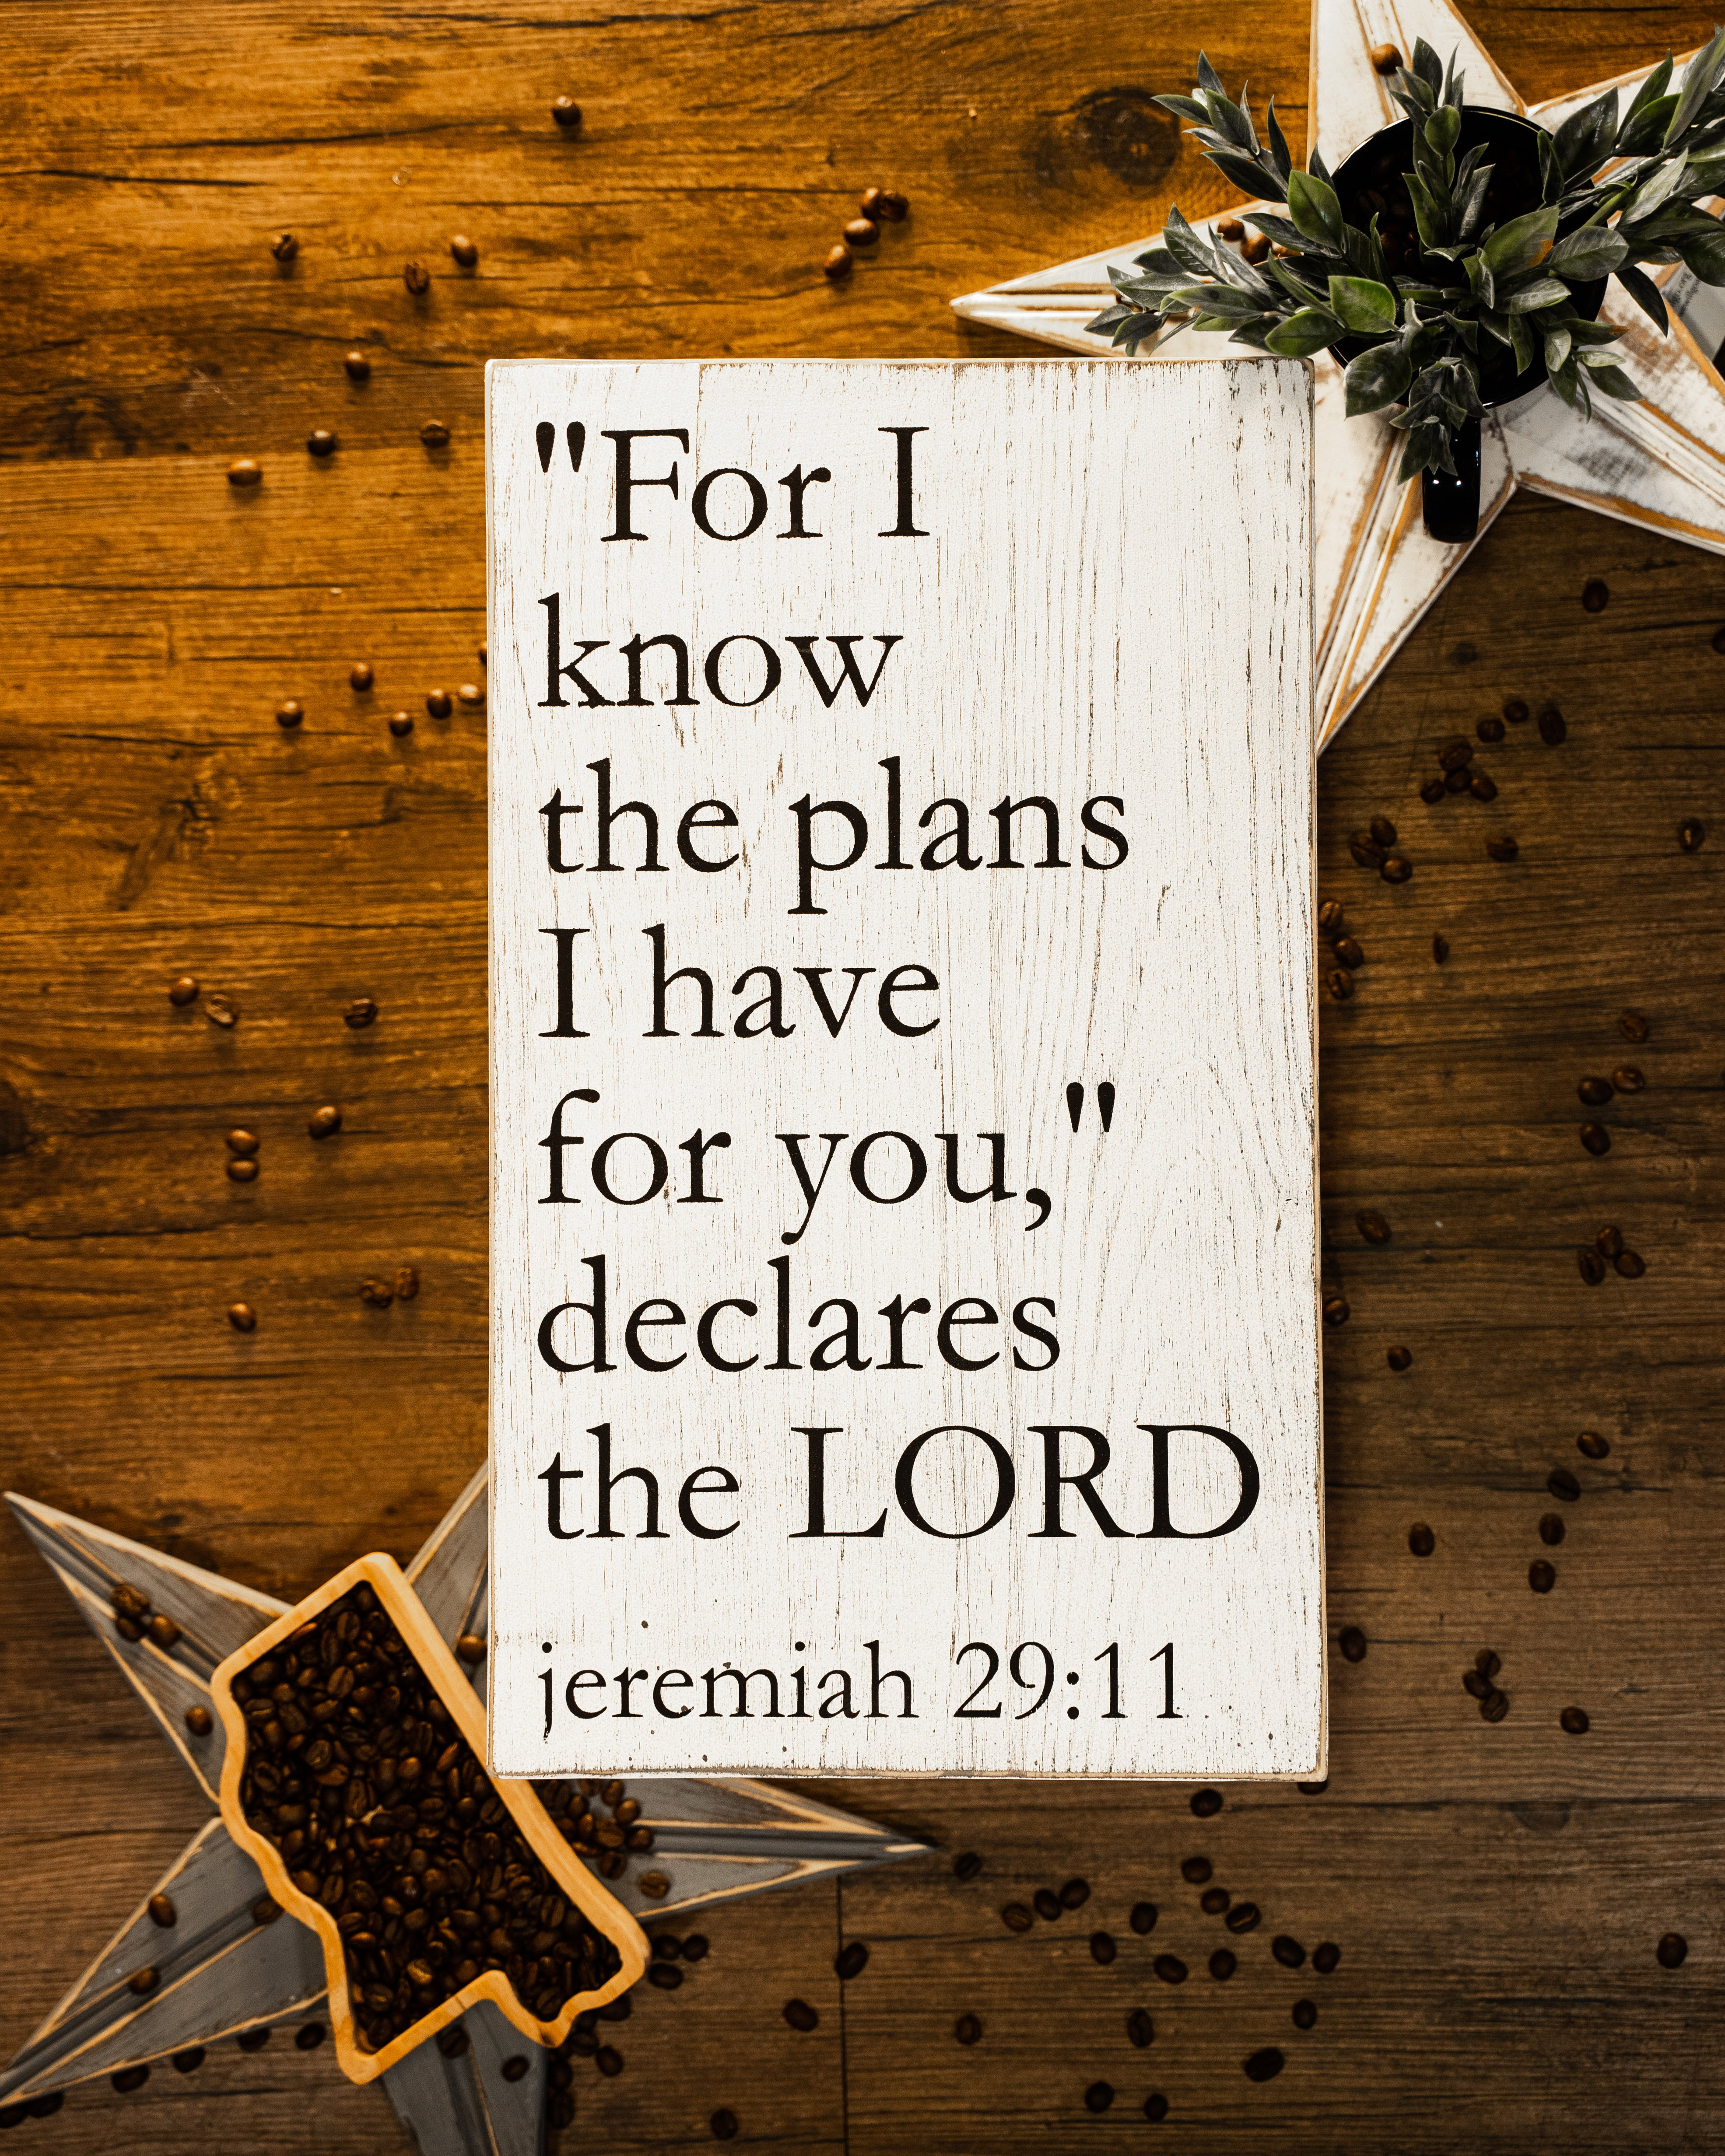 Jeremiah 29:11 Wall Sign